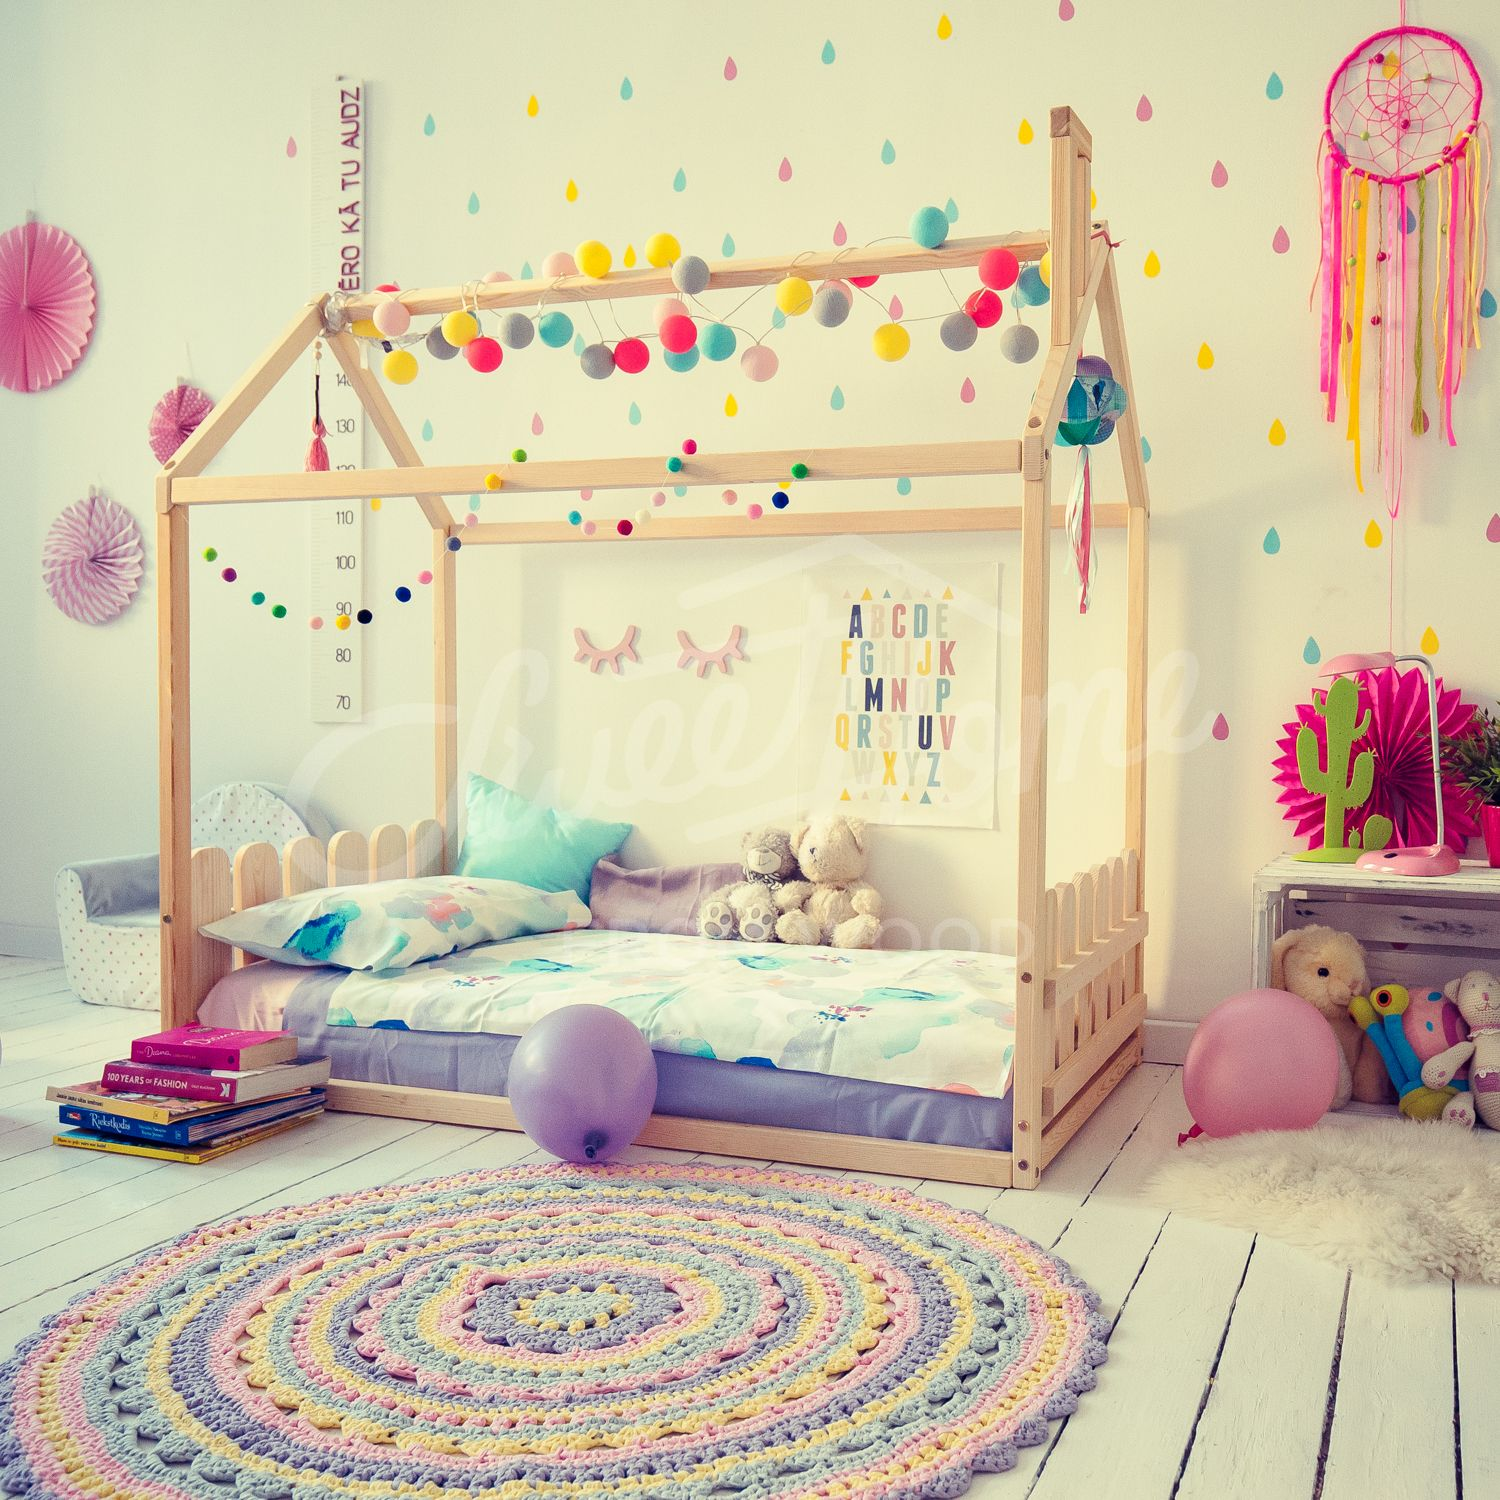 Kids Bedroom Furniture Kids Wooden Toys Online: Fun Colorful Girls Room Interior Idea, Toddler Bed